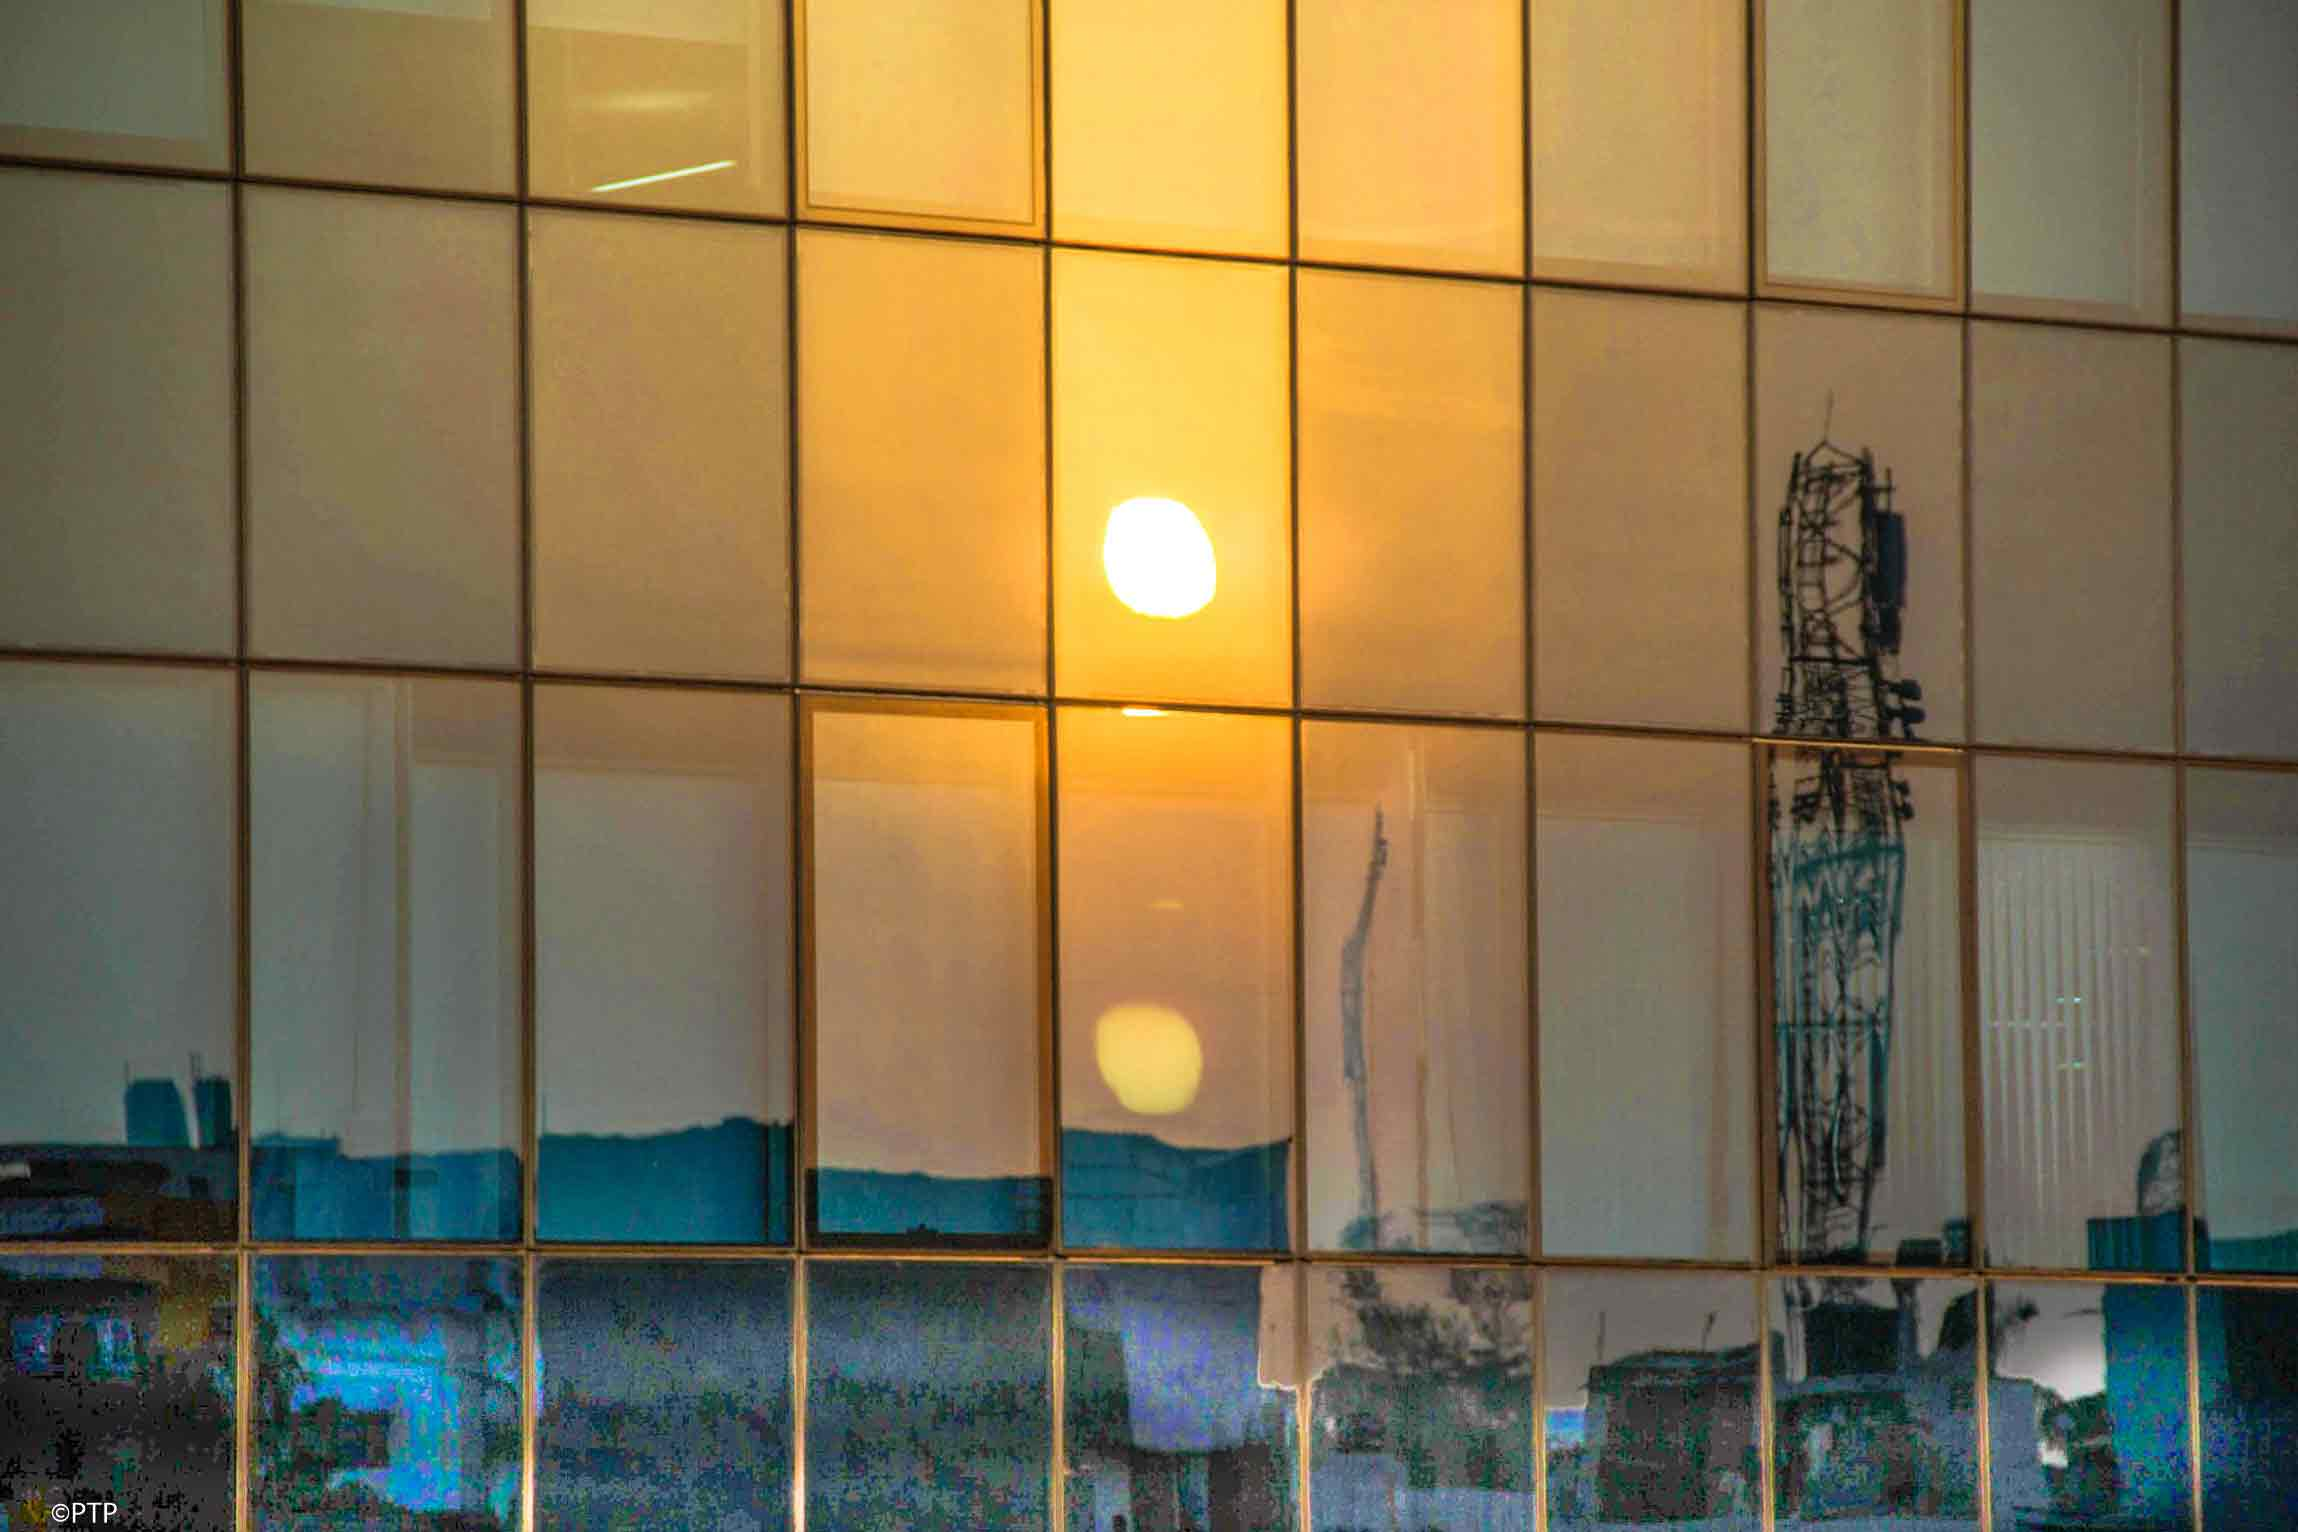 Sun set Reflection in the glass